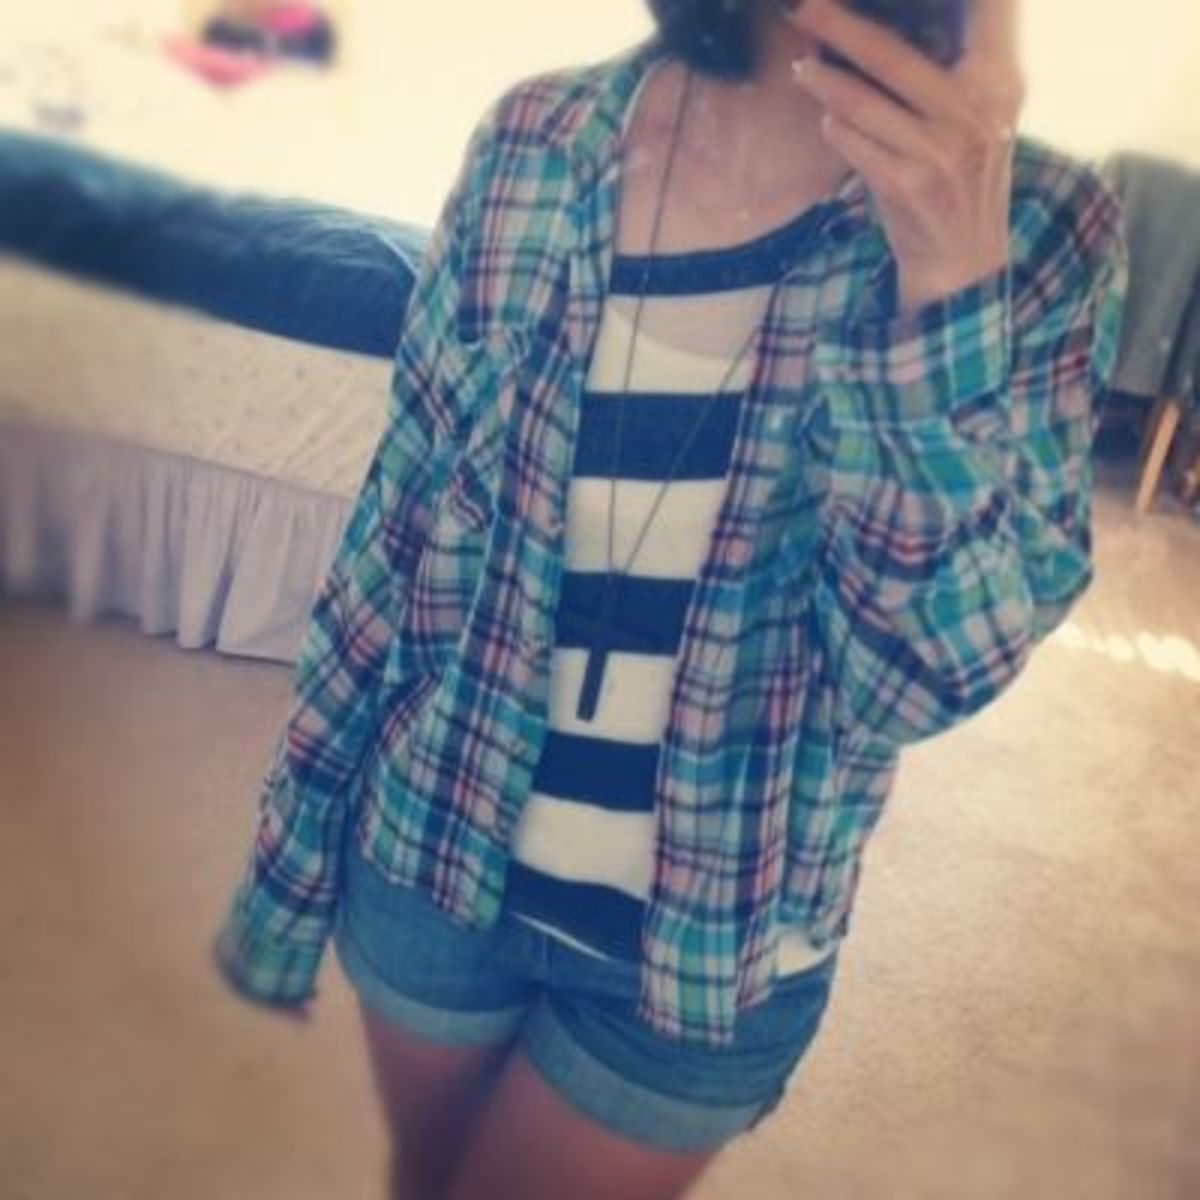 A casual look—flannel top and striped undershirt.